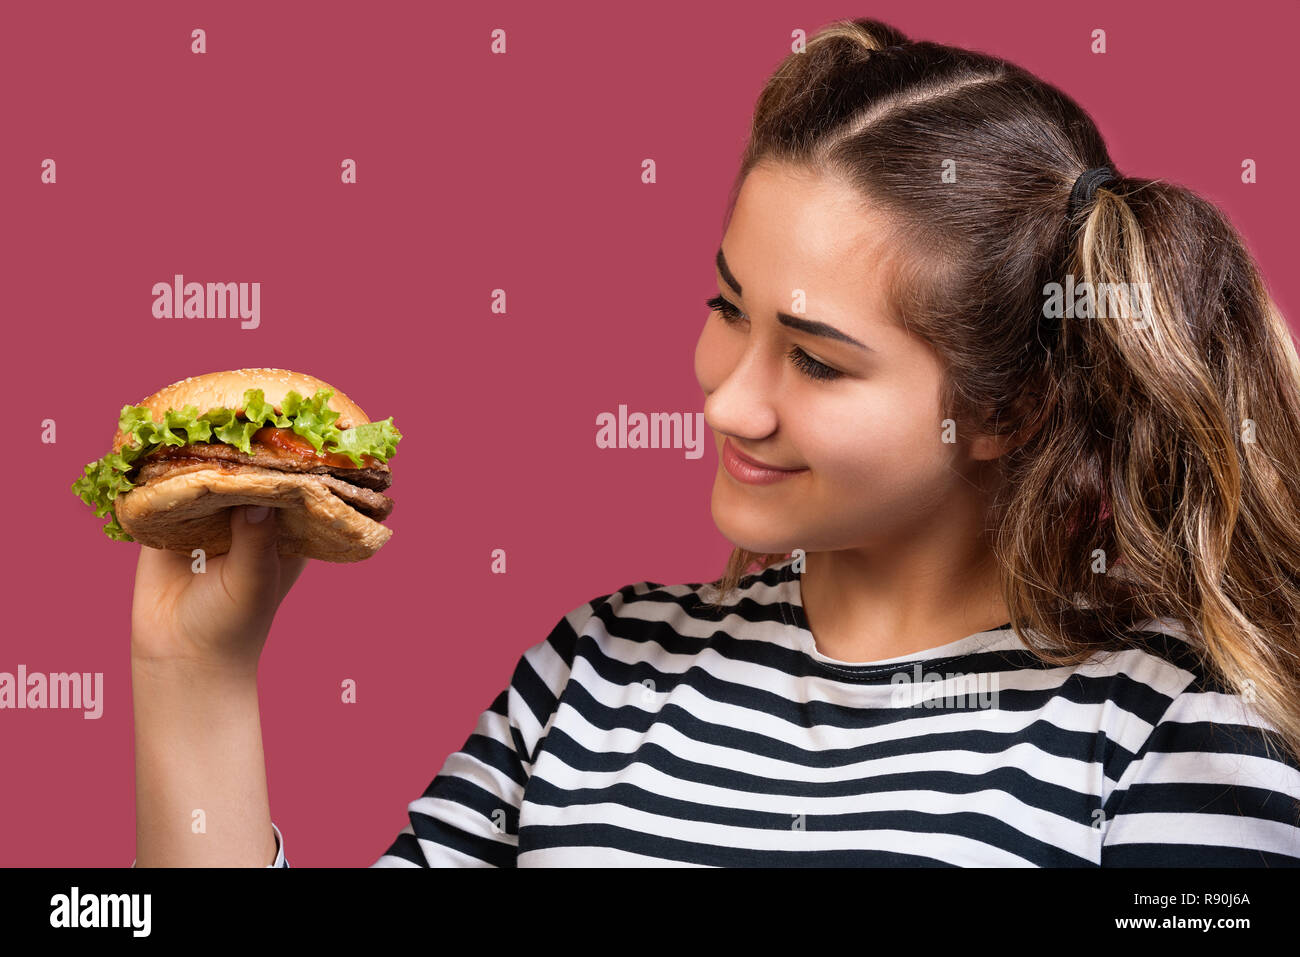 Close up portrait of cool girl with ponytails looking at hamburger over colorful pink background - Stock Image